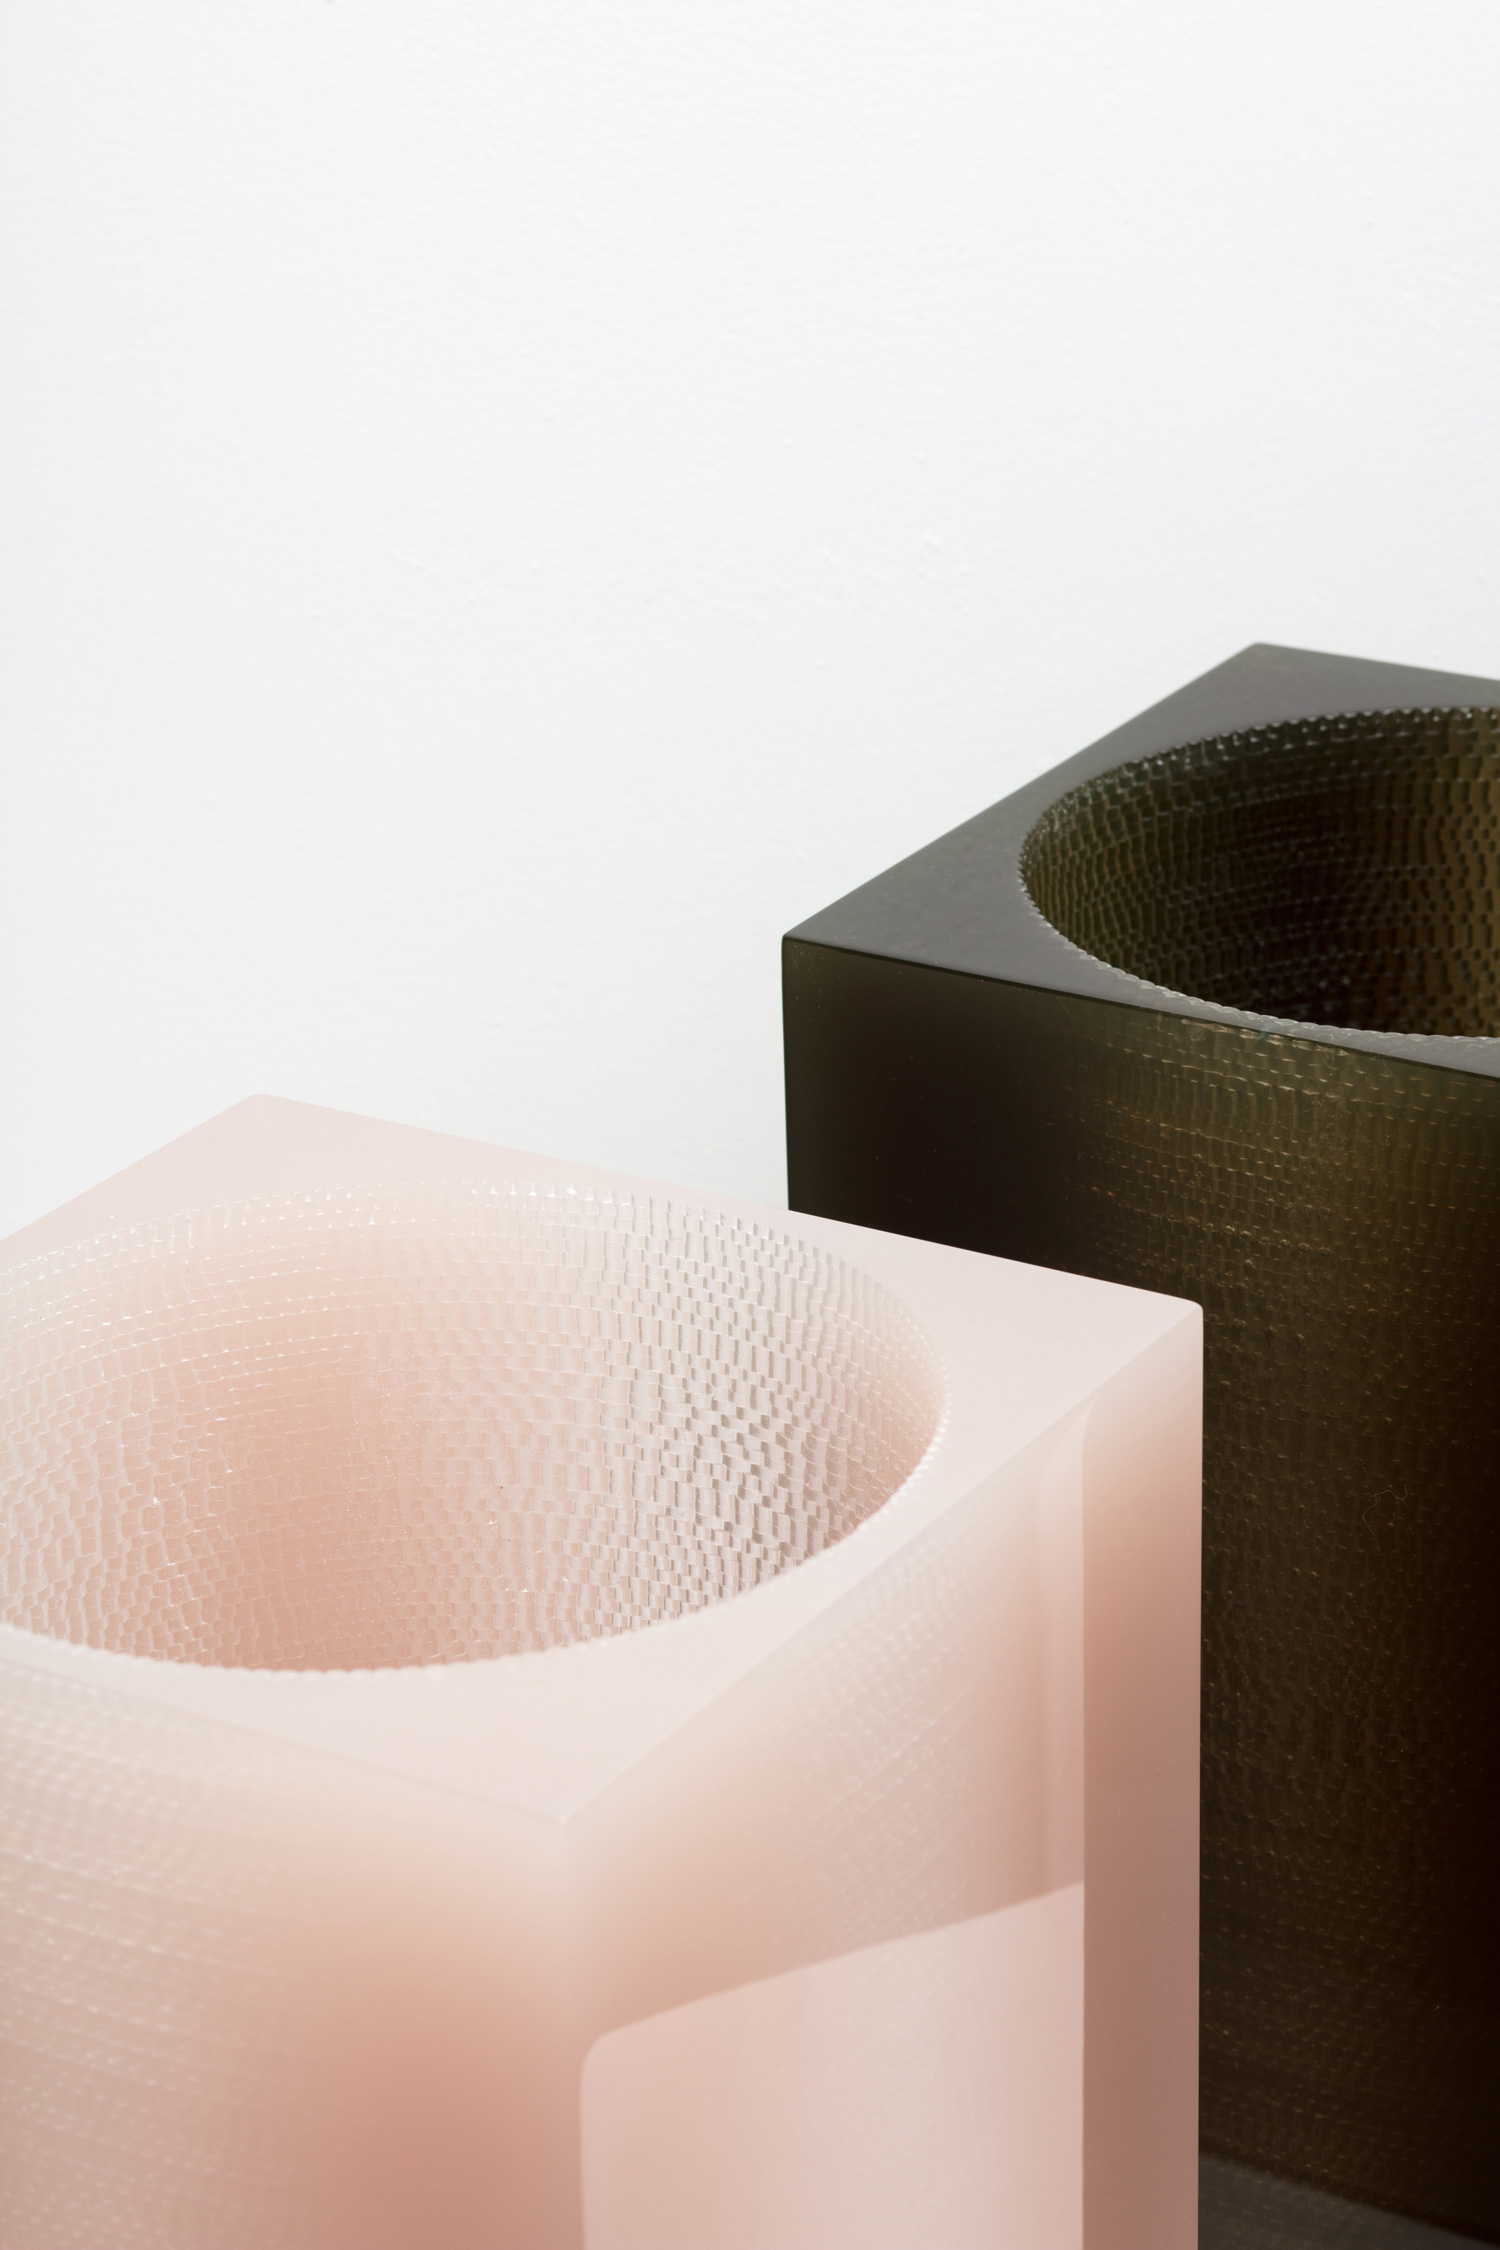 Grove Vessel by Studio Truly Truly, Australian Designers Milan   Yellowtrace